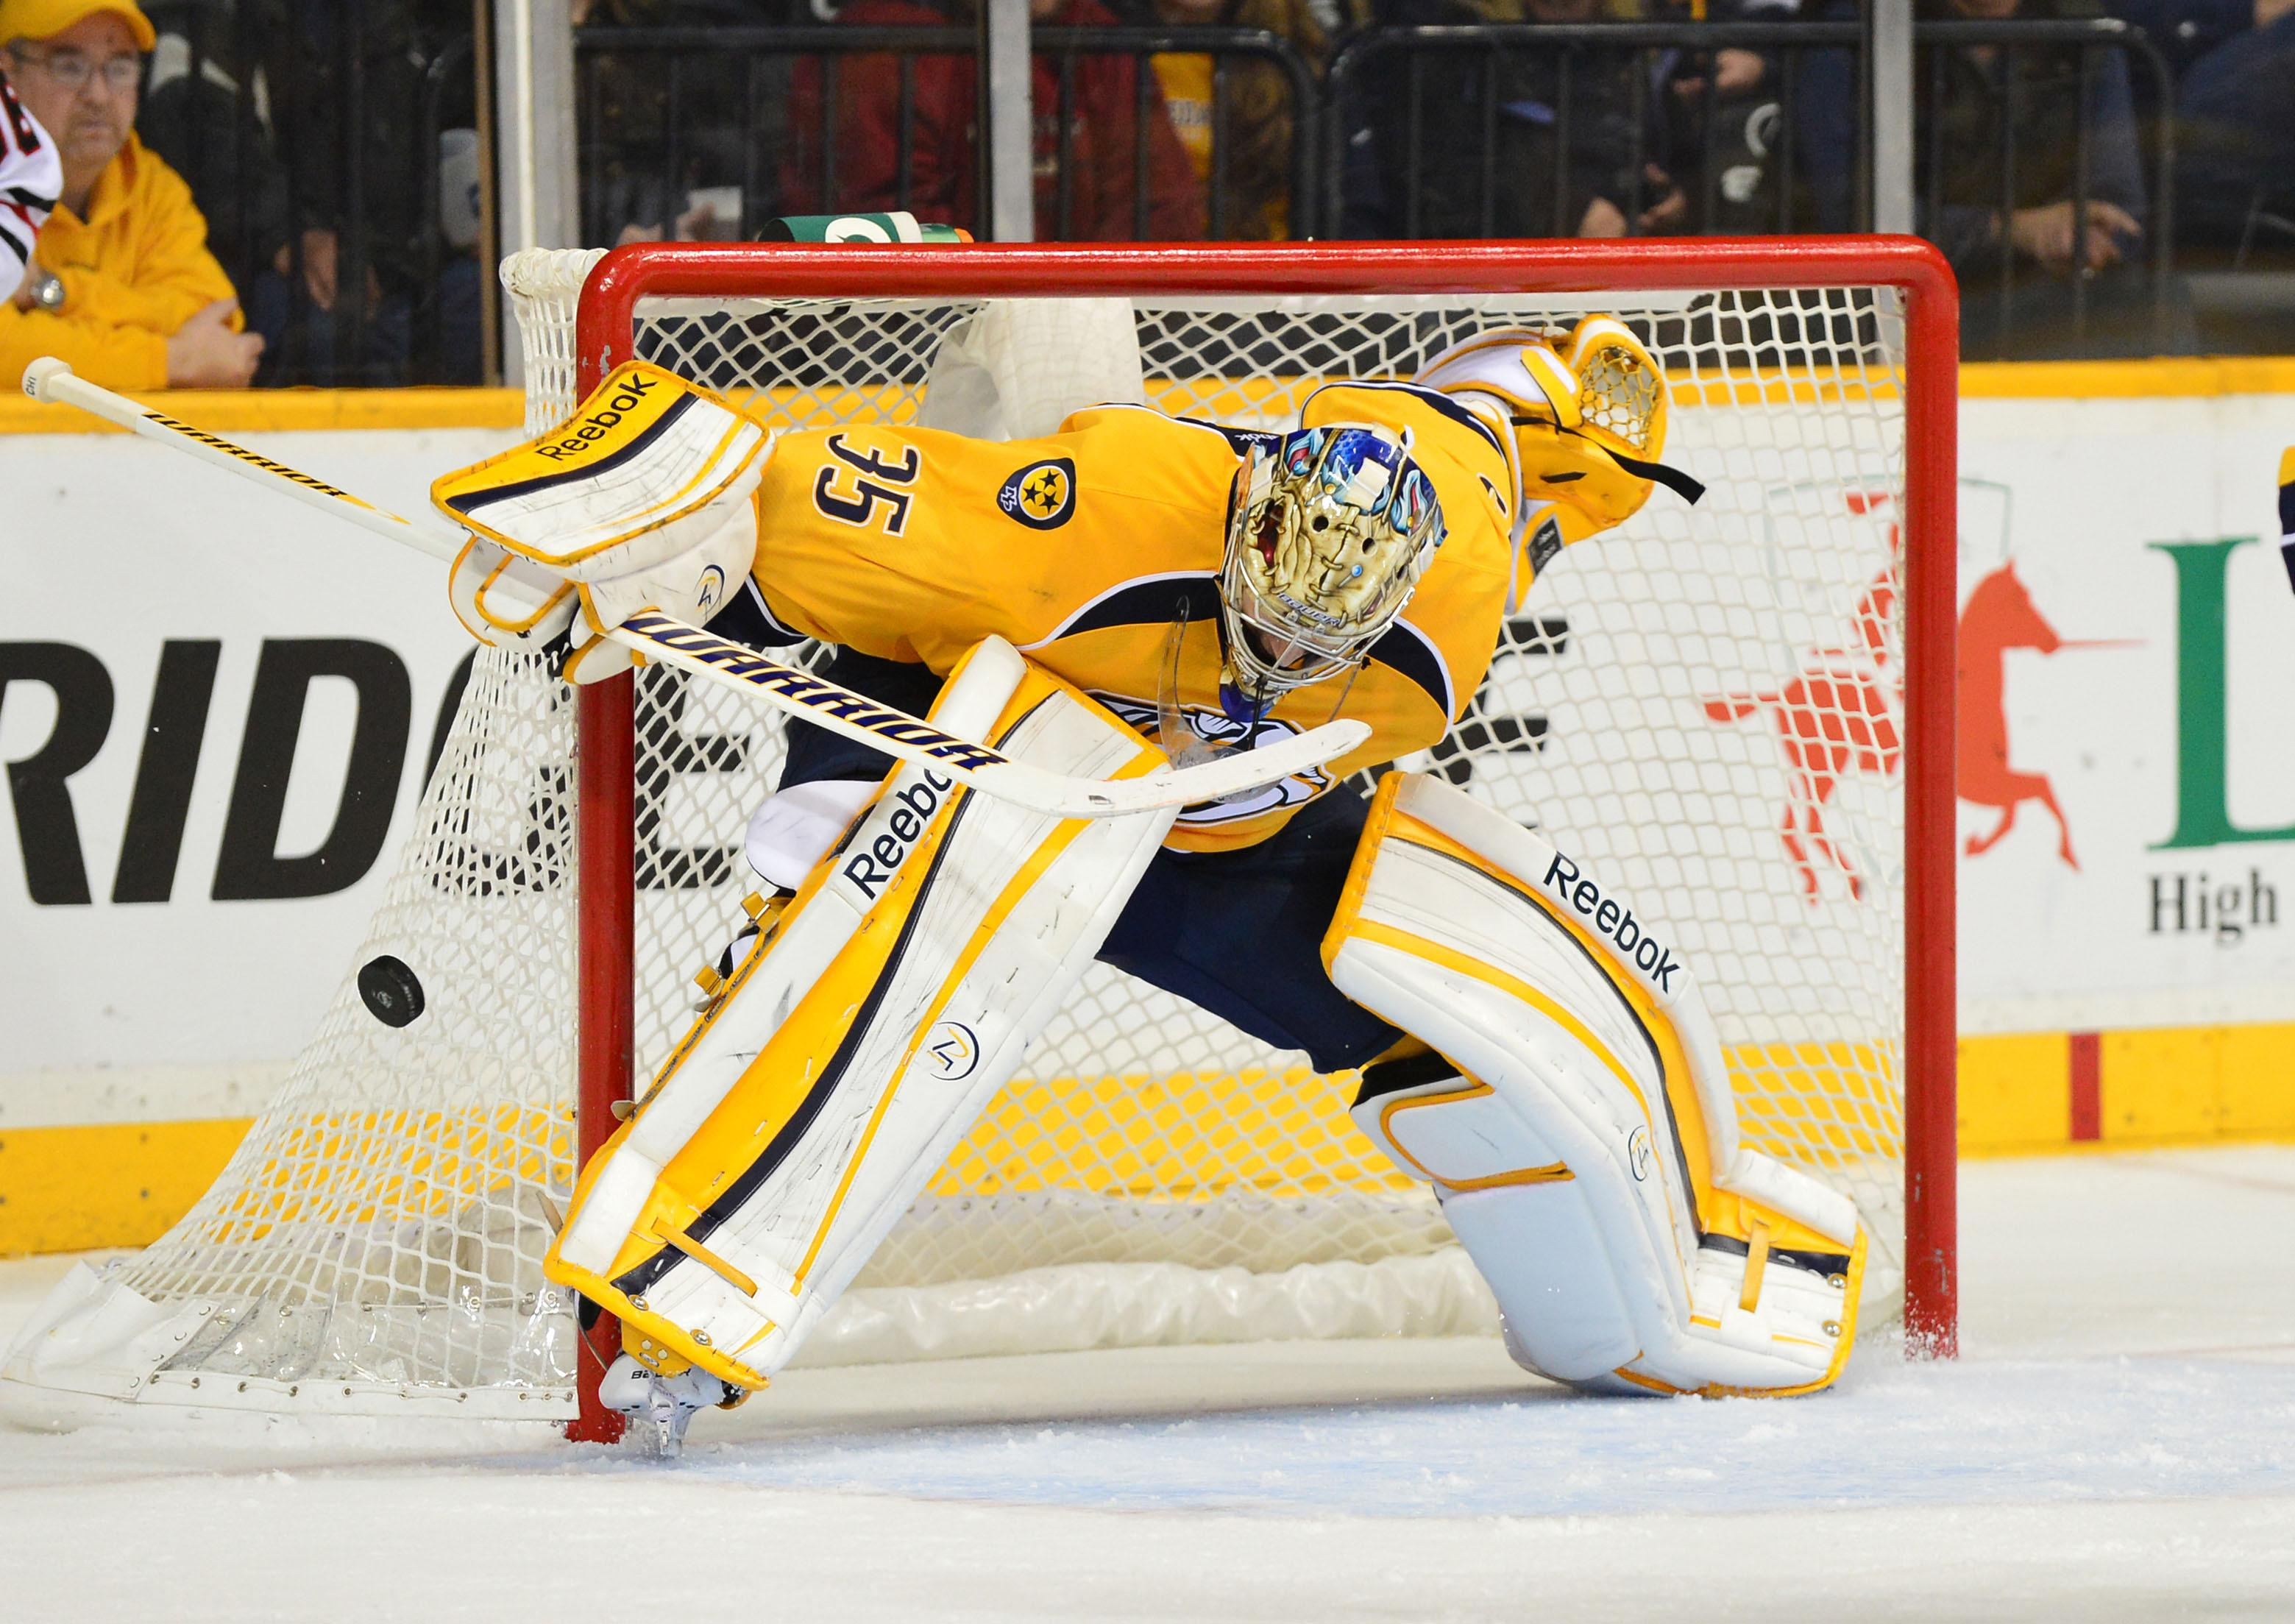 Famous Player of Nashville Pekka Rinne wallpapers and image